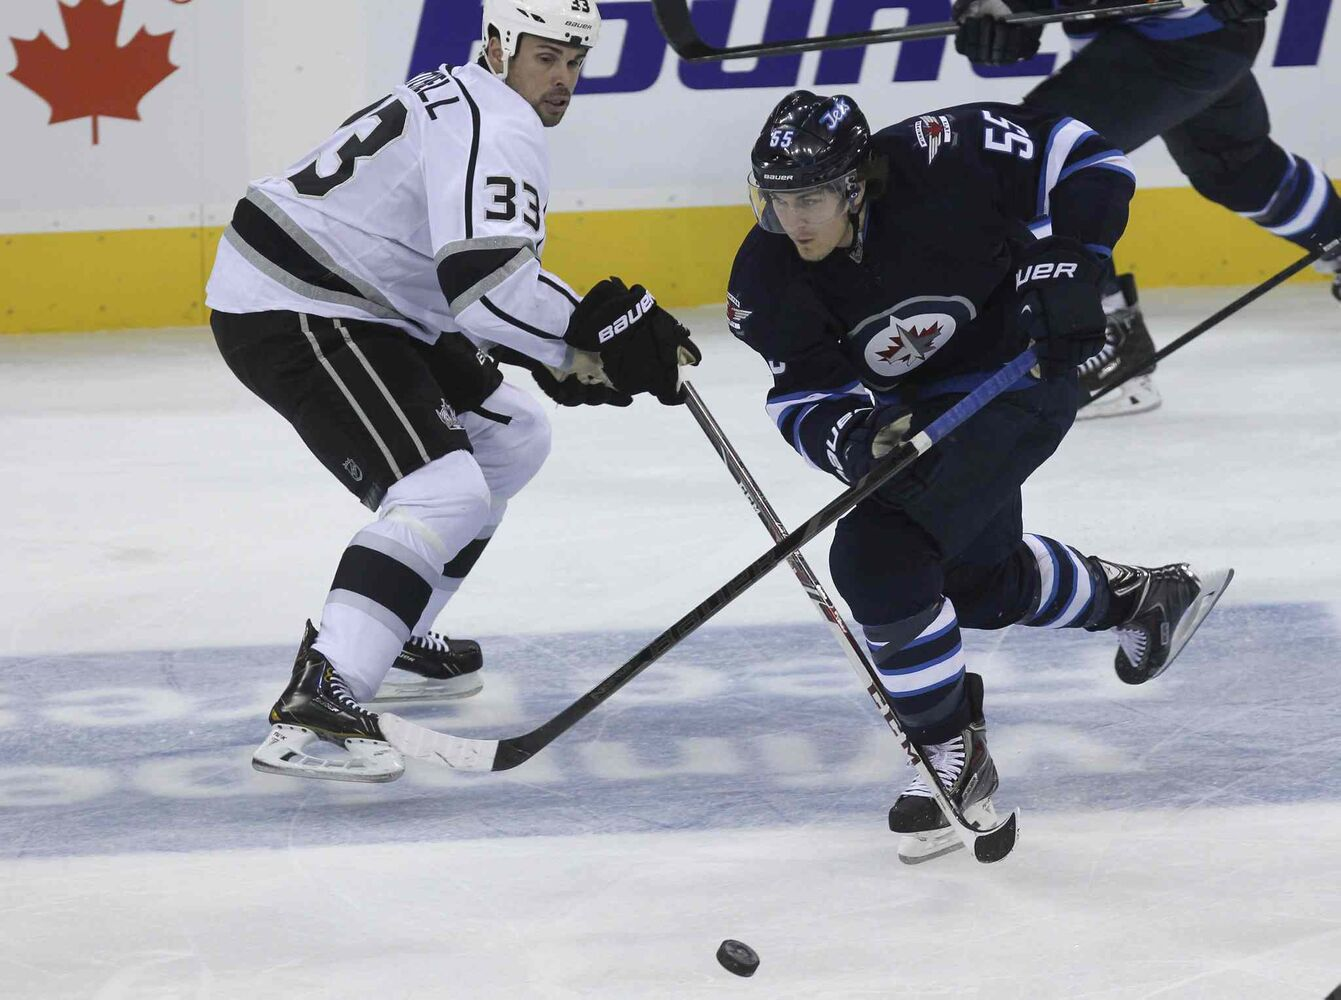 Winnipeg Jets' Mark Scheifele (55) stickhandles around Los Angeles Kings' Willie Mitchell (33) in the second period. (MIKE DEAL / WINNIPEG FREE PRESS)